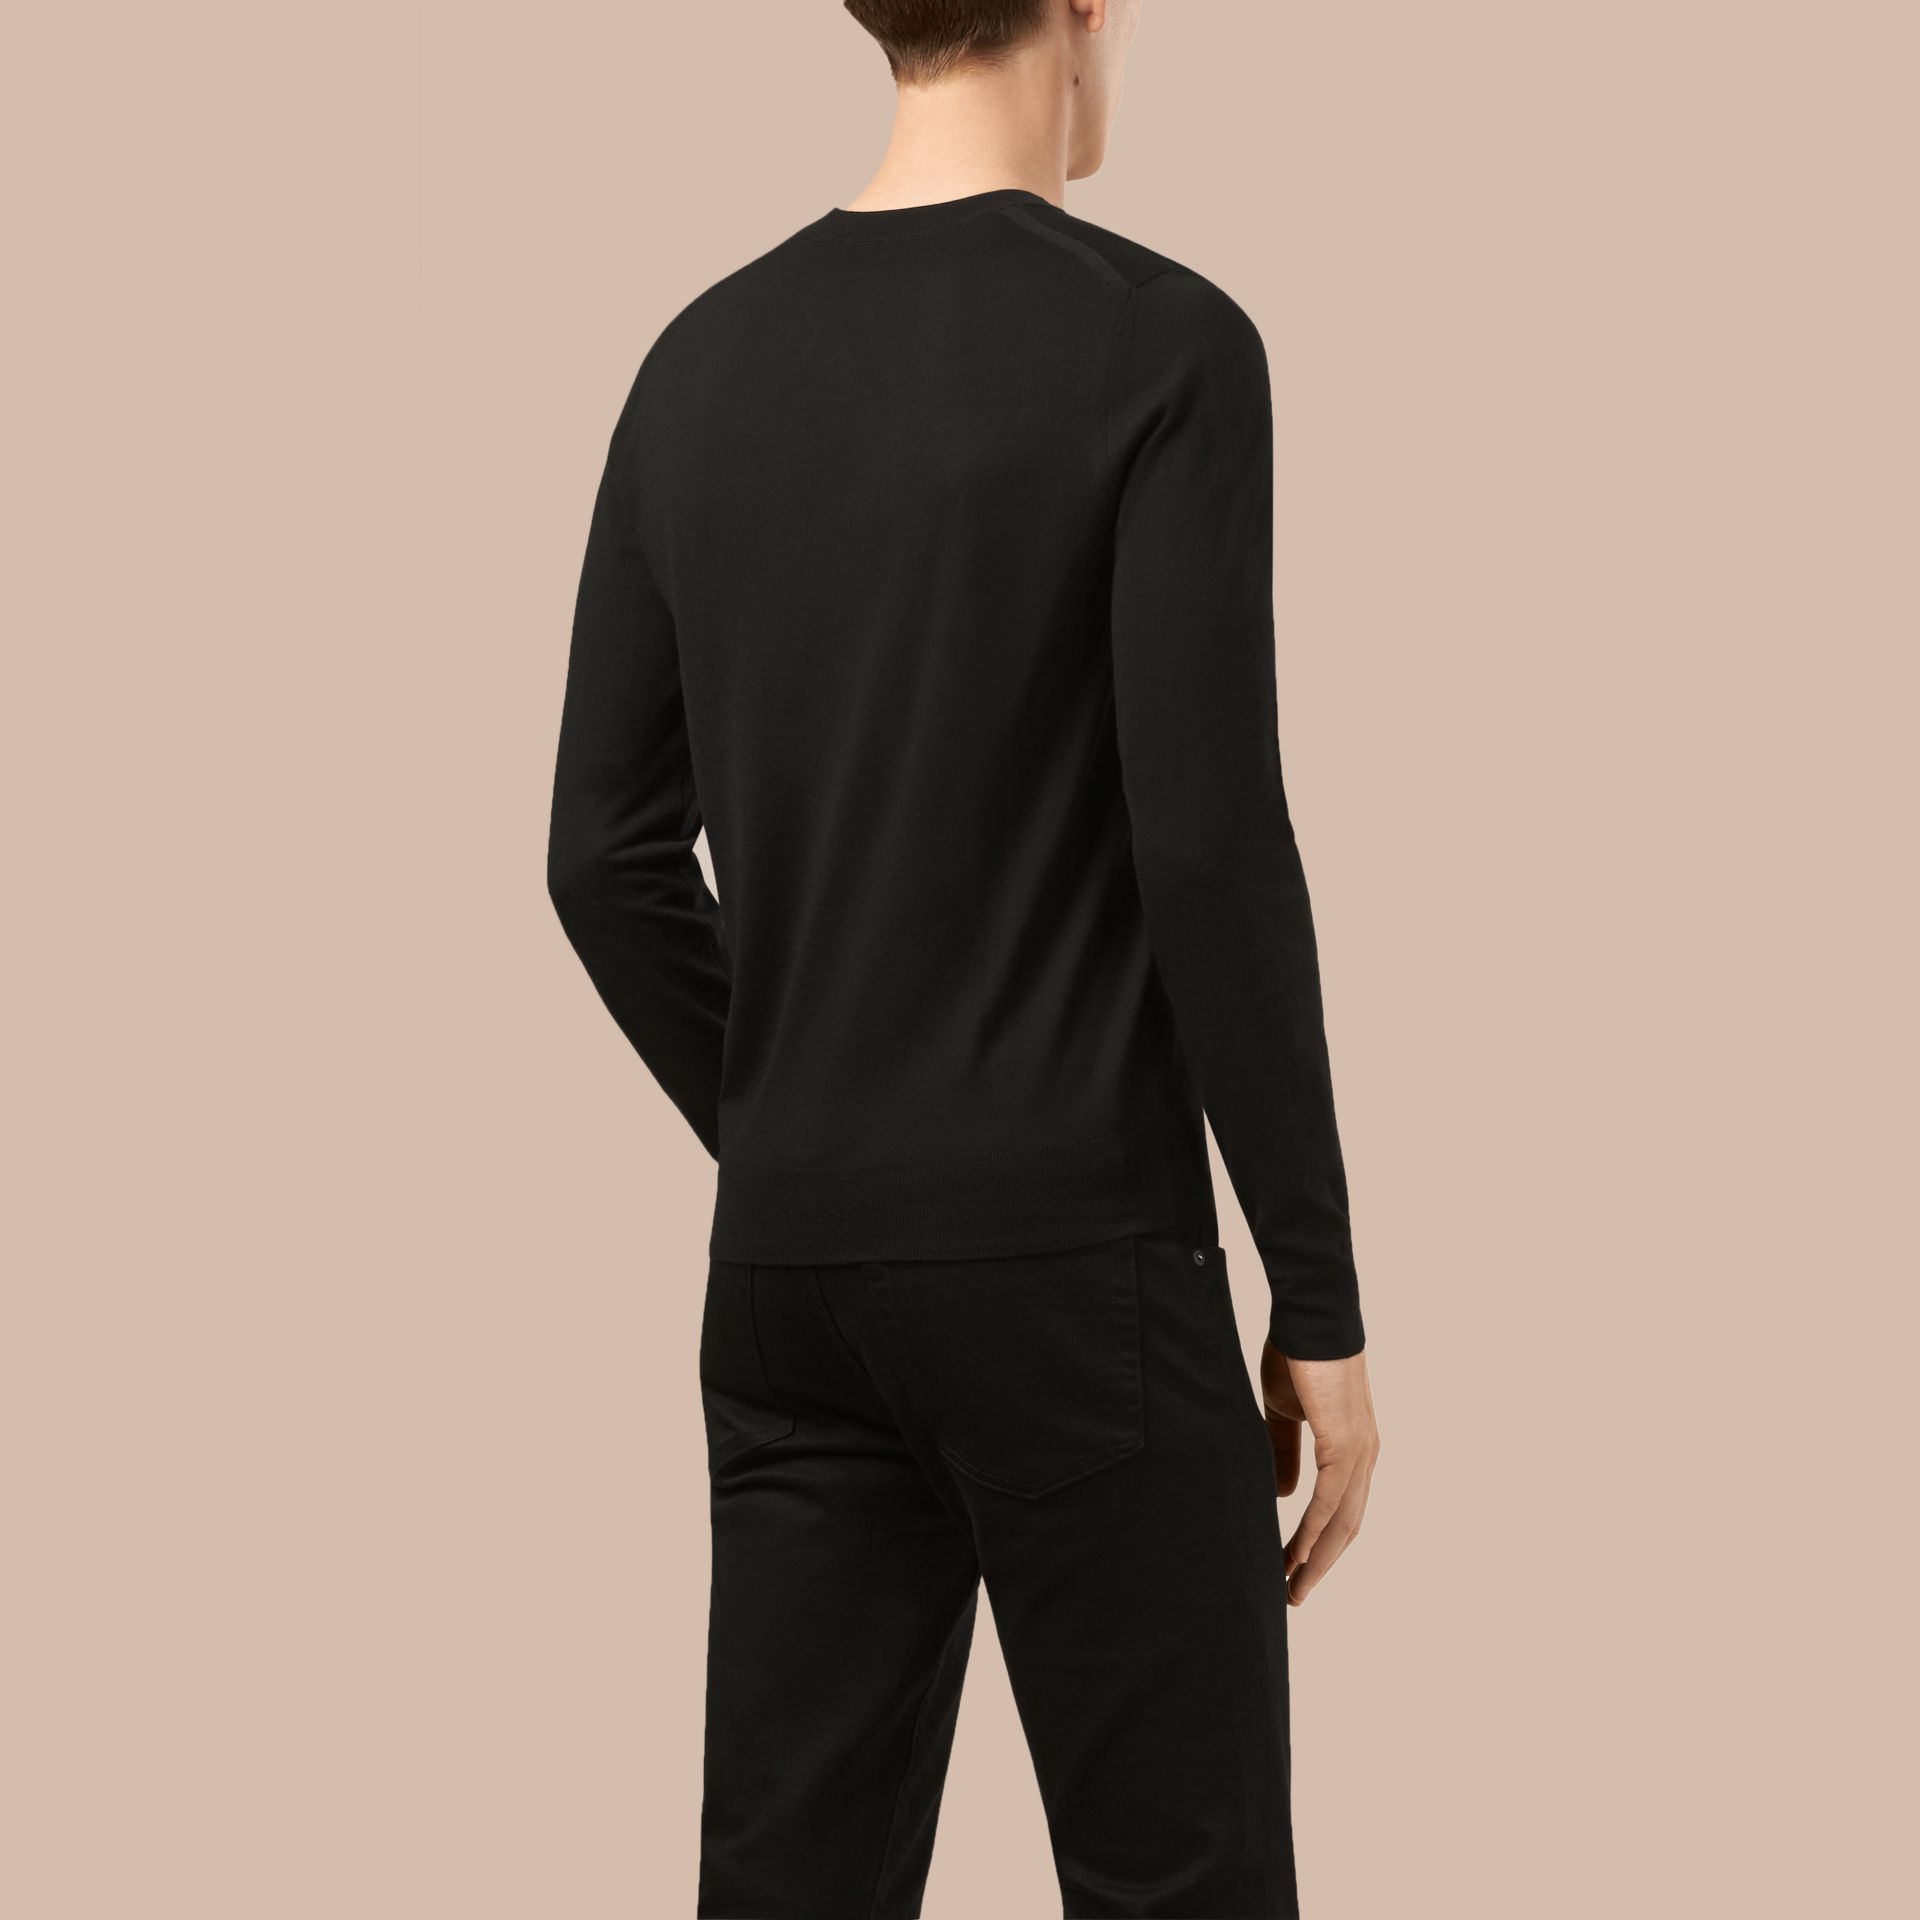 Black Crew Neck Merino Wool Sweater Black - gallery image 3